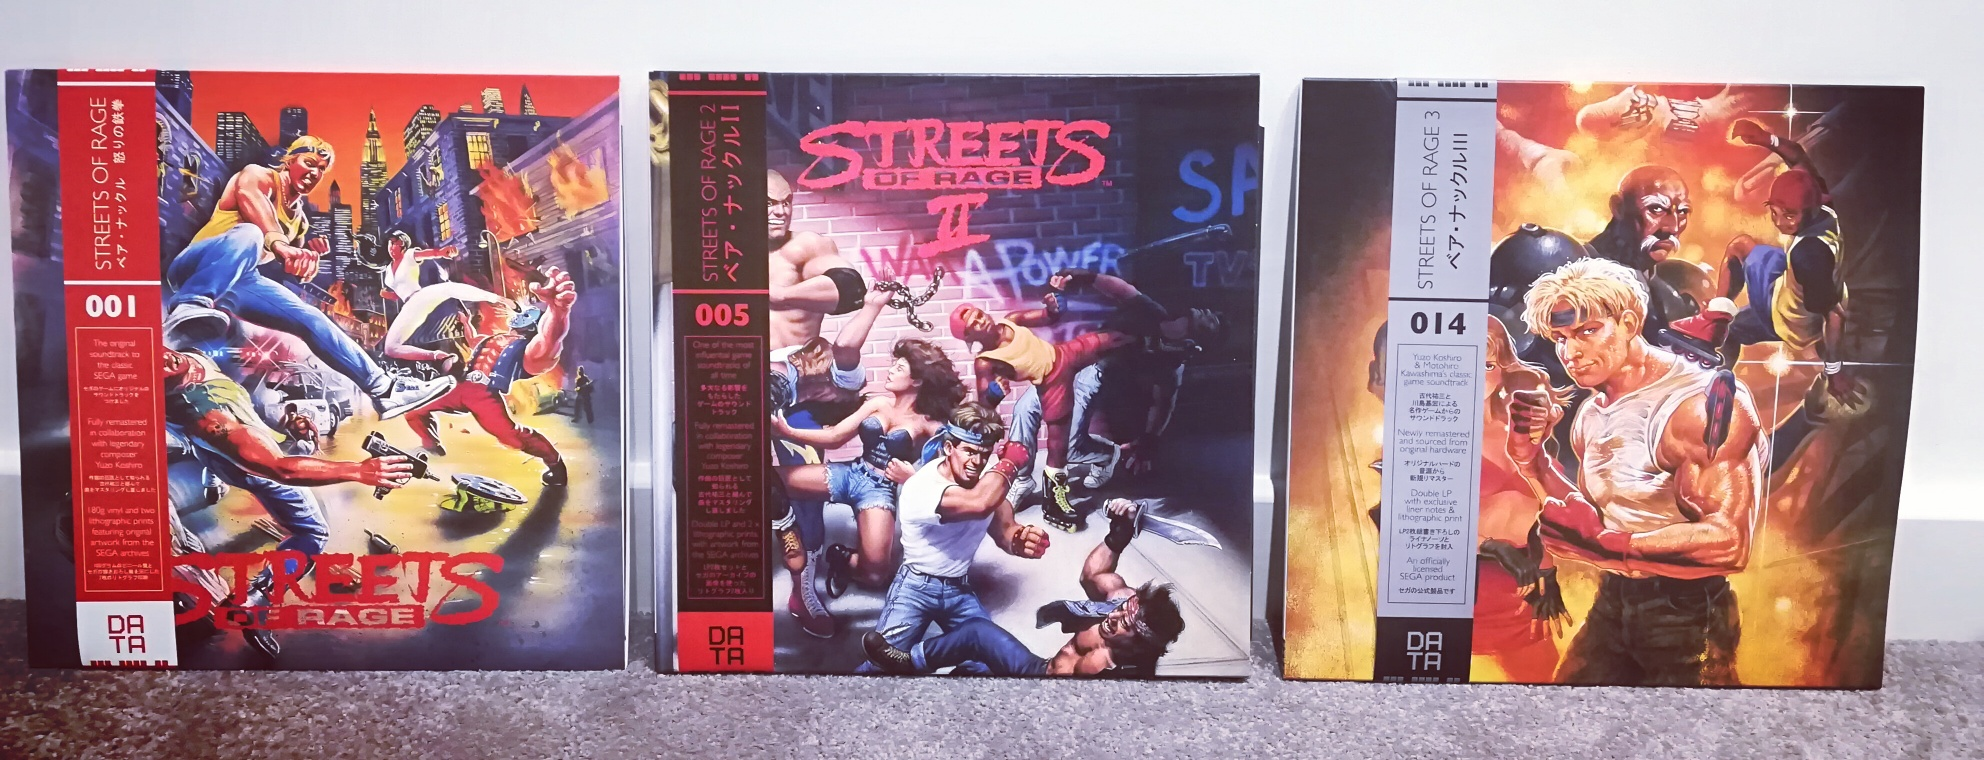 The Streets of Rage Vinyl Soundtracks are things of beauty!